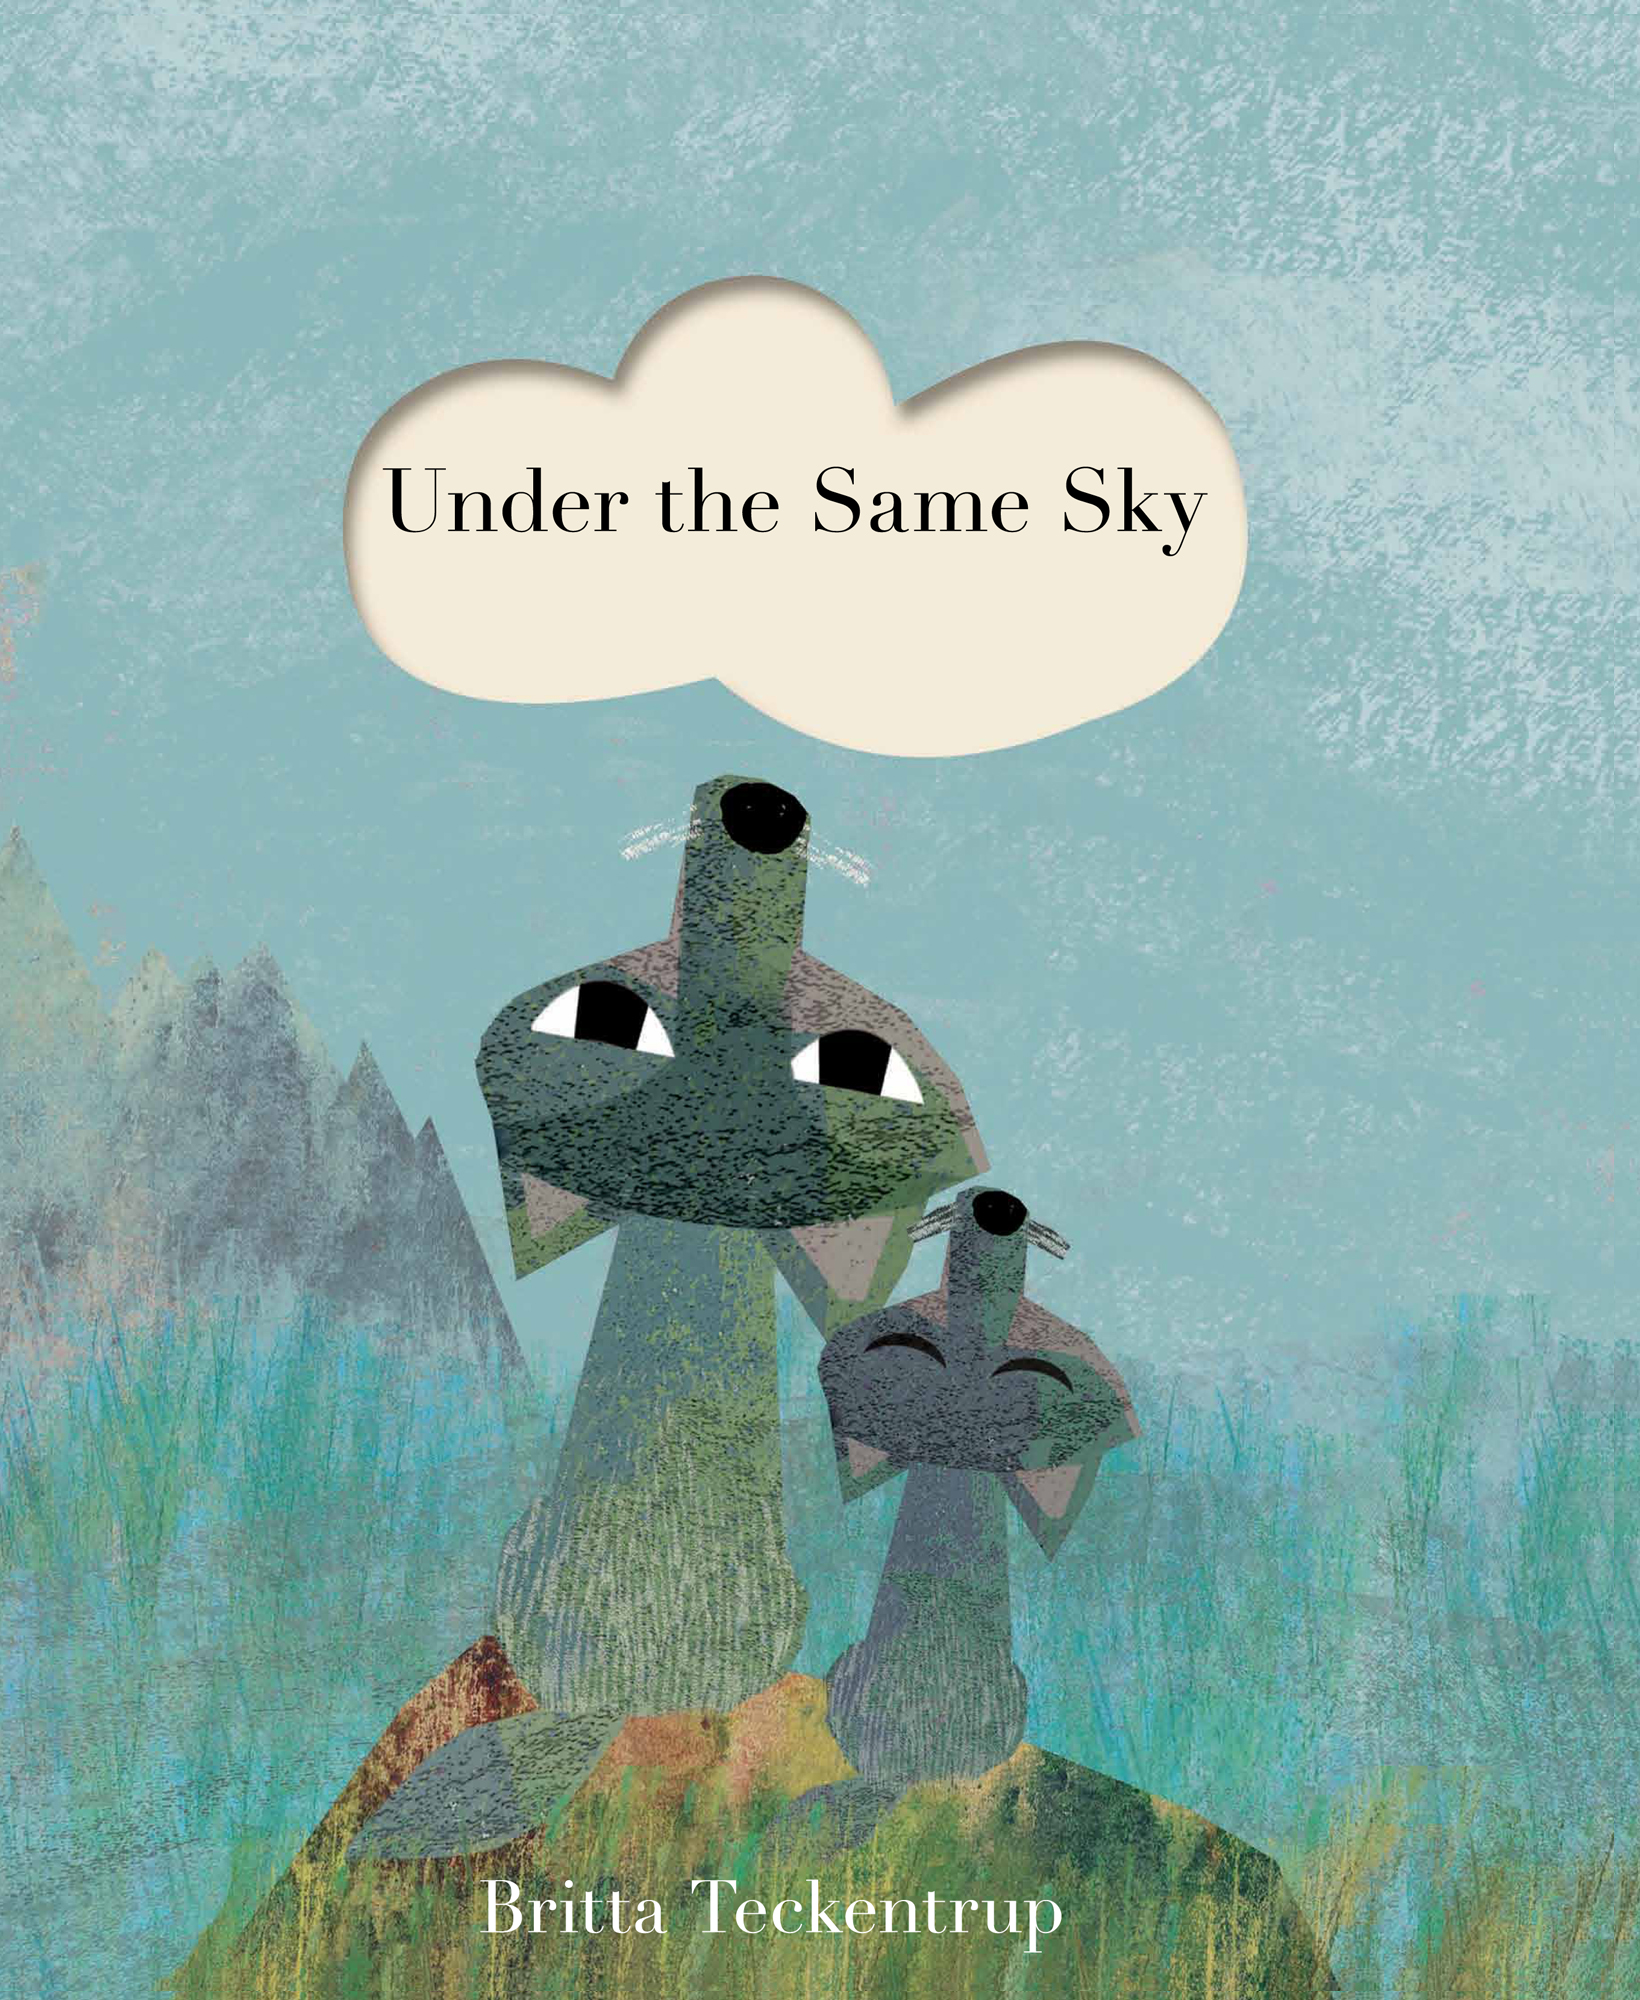 Under the Same Sky - Cover Image.jpg